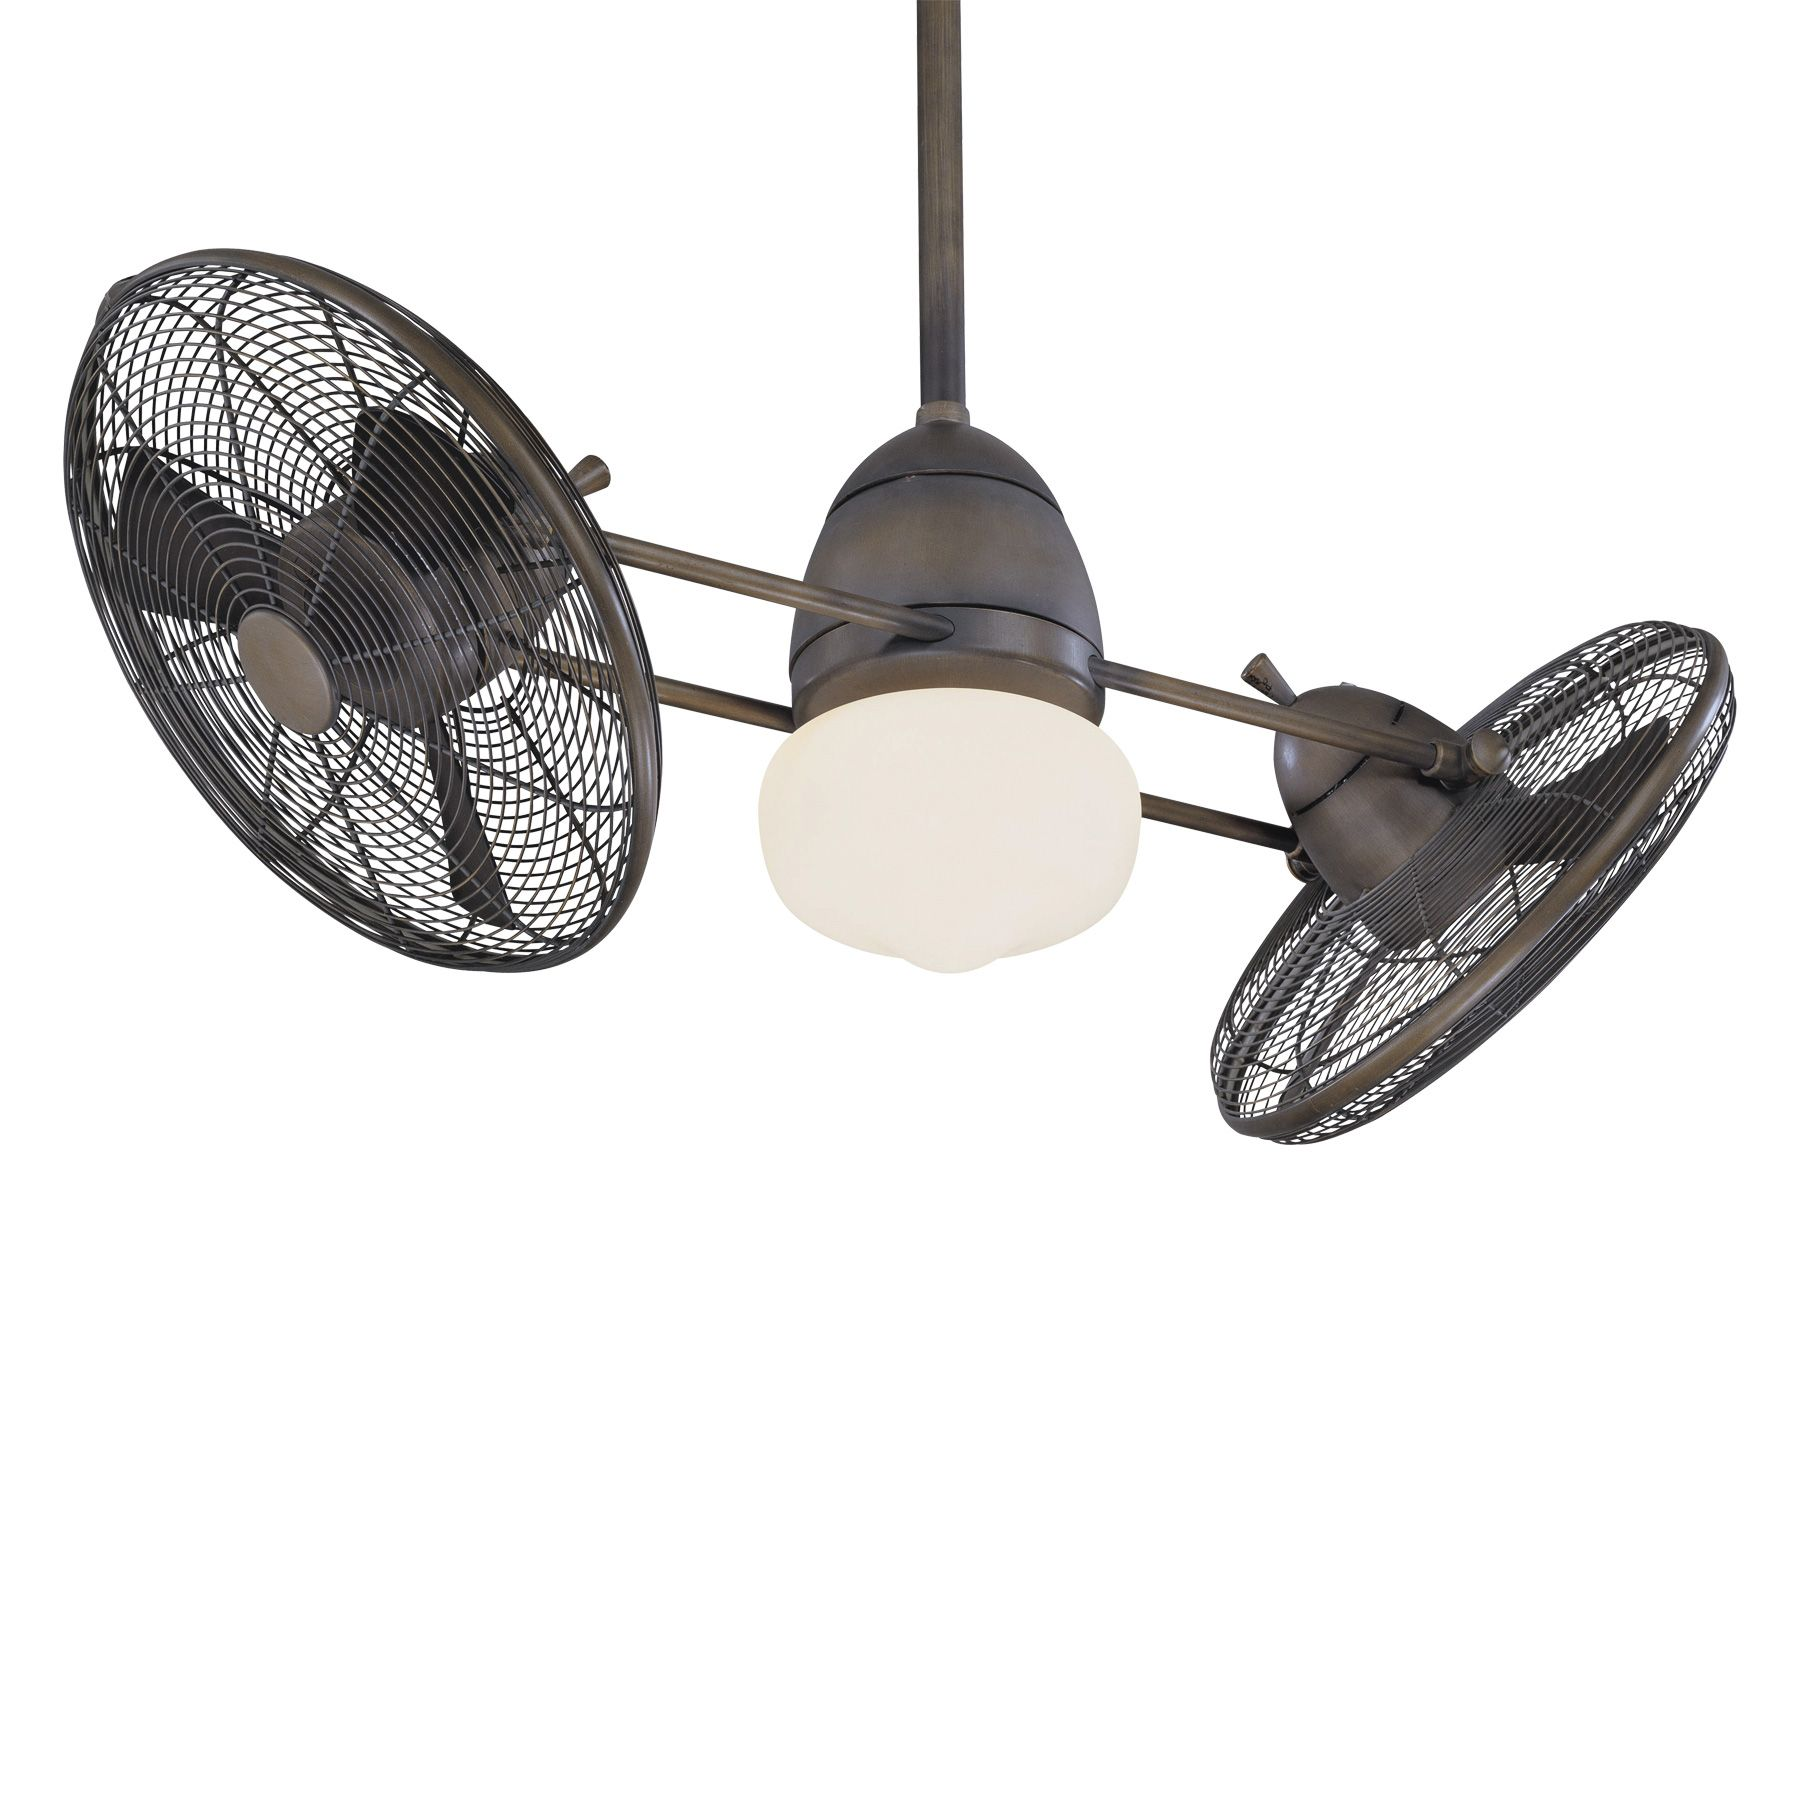 Dual Outdoor Ceiling Fans With Lights Gyro Twin Turbo Fan By Minka Aire F602 Rrb Ceiling Fan